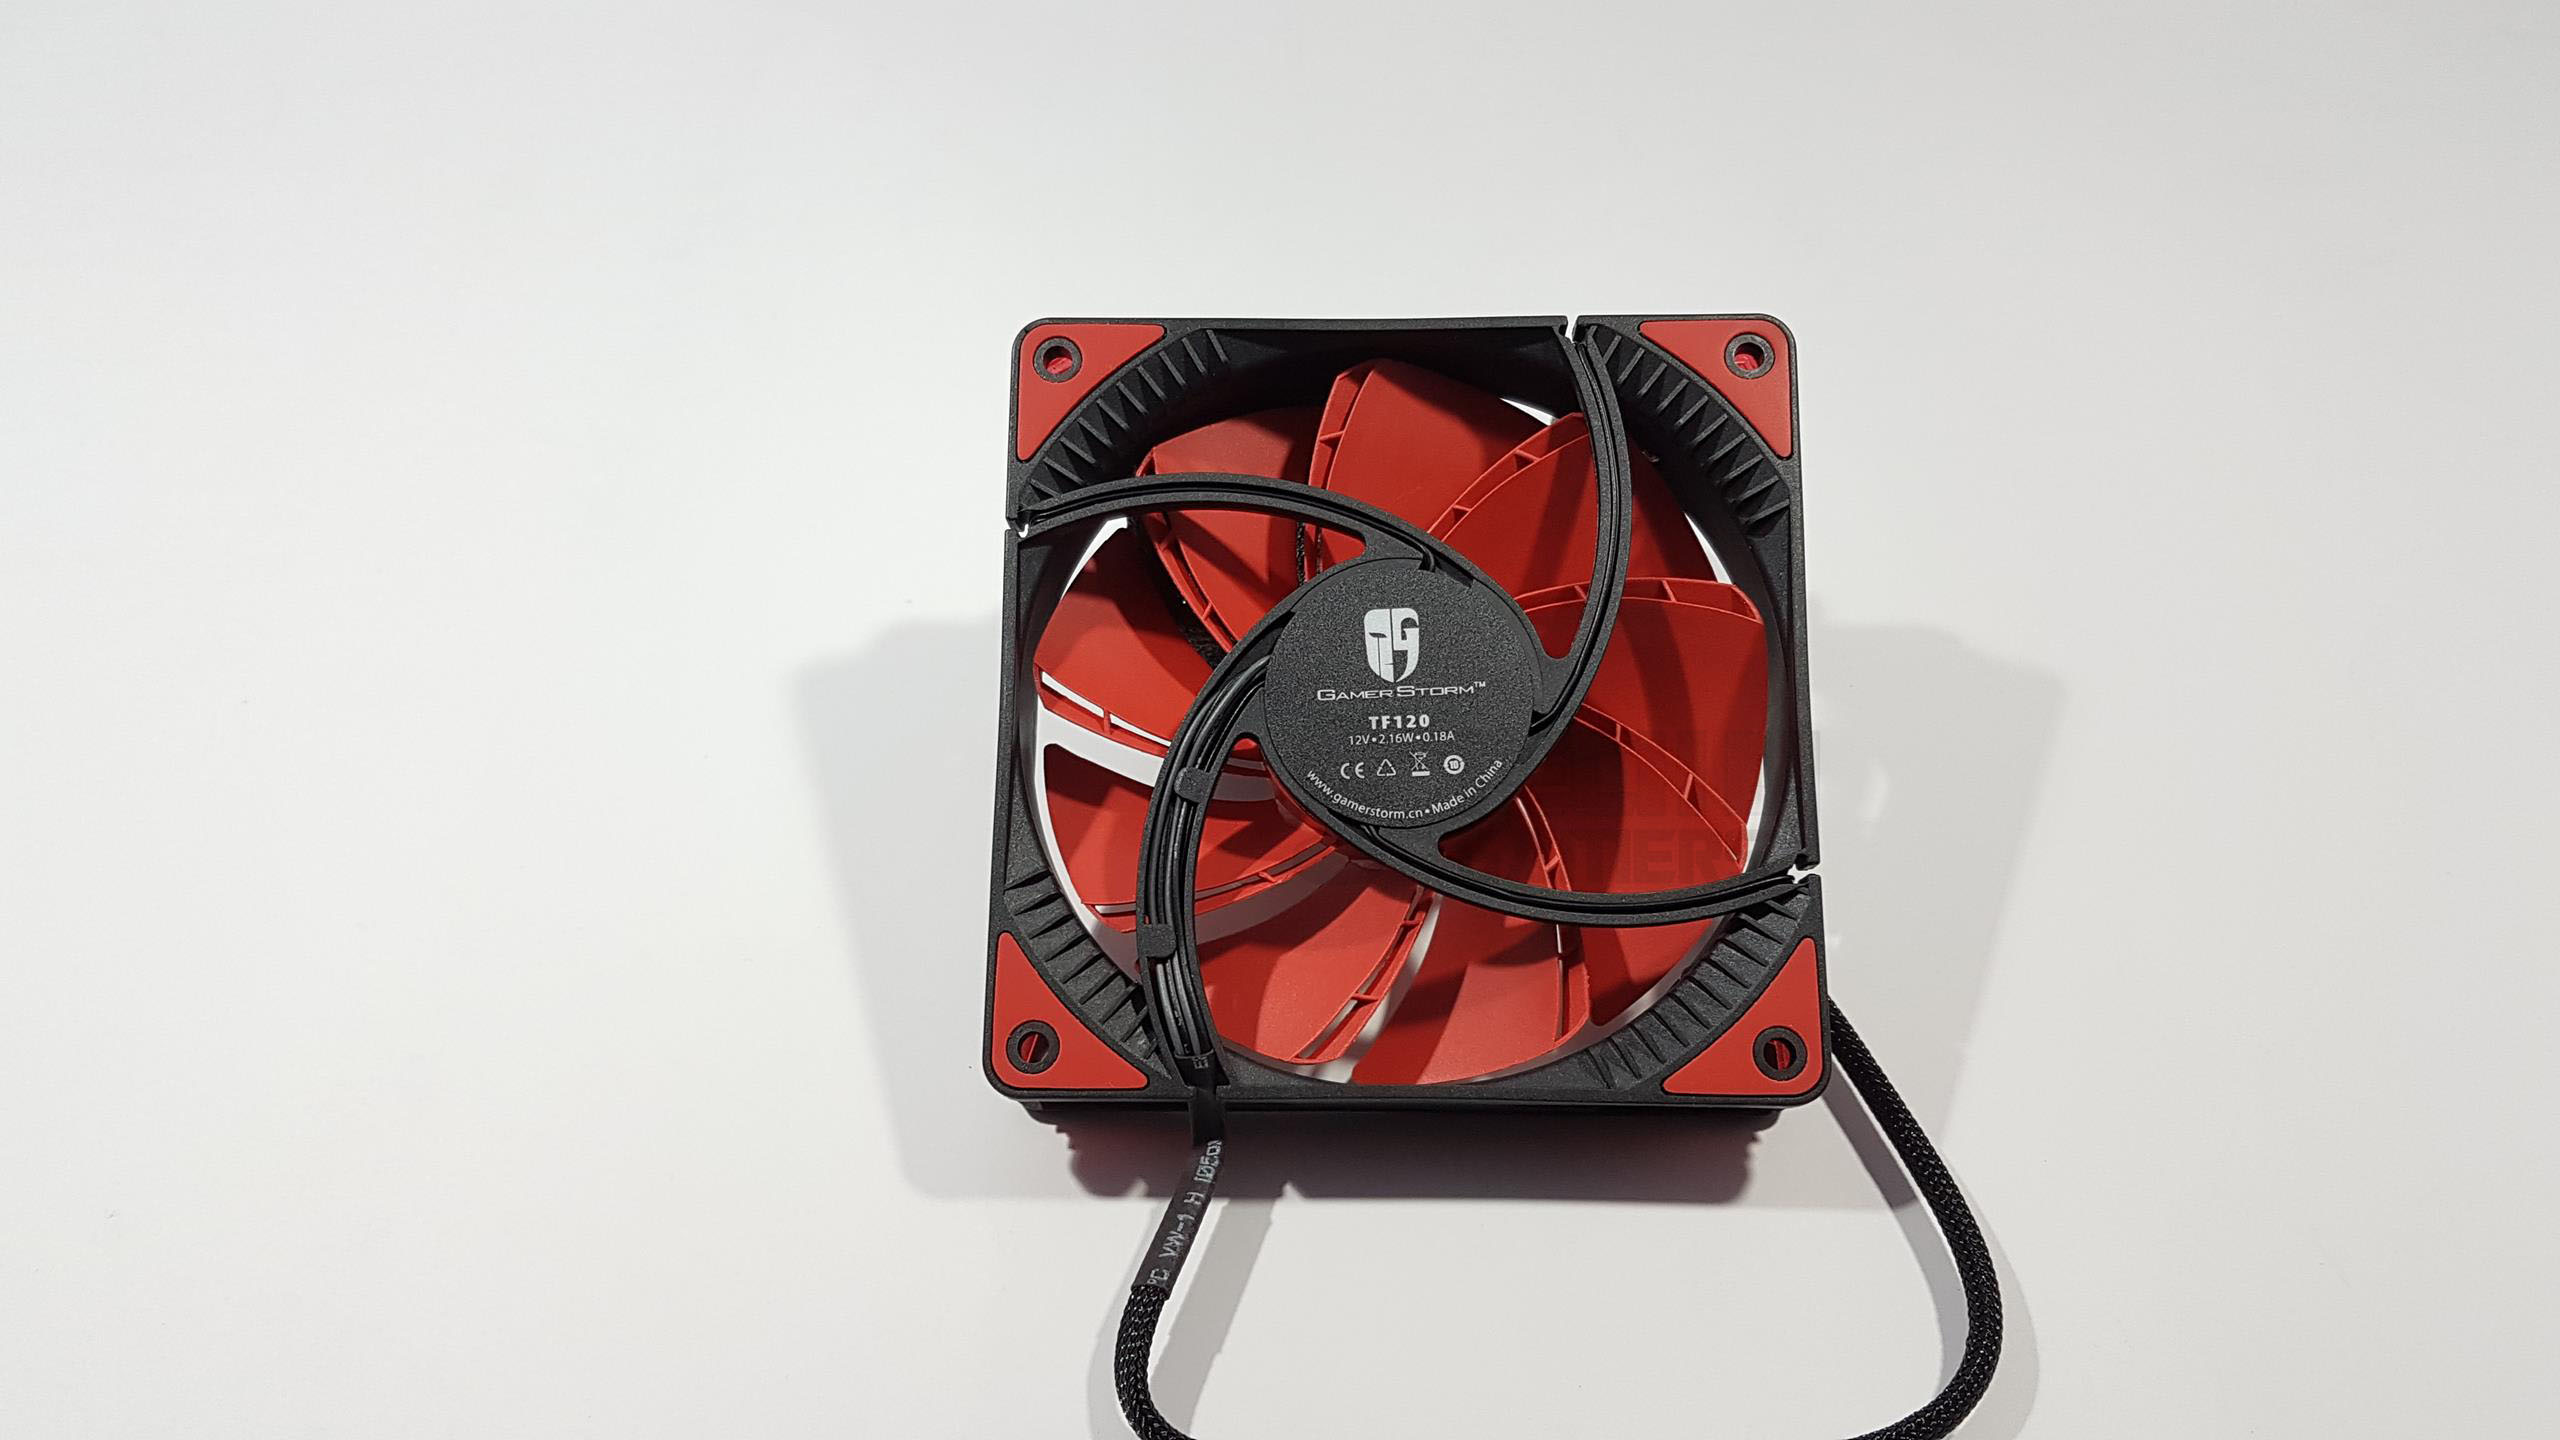 Deepcool Wiring Diagram Trusted Xfan 12cm Casing Fan Red Led Gamerstorm Tf120 Pc Case Fans Review Residential Diagrams